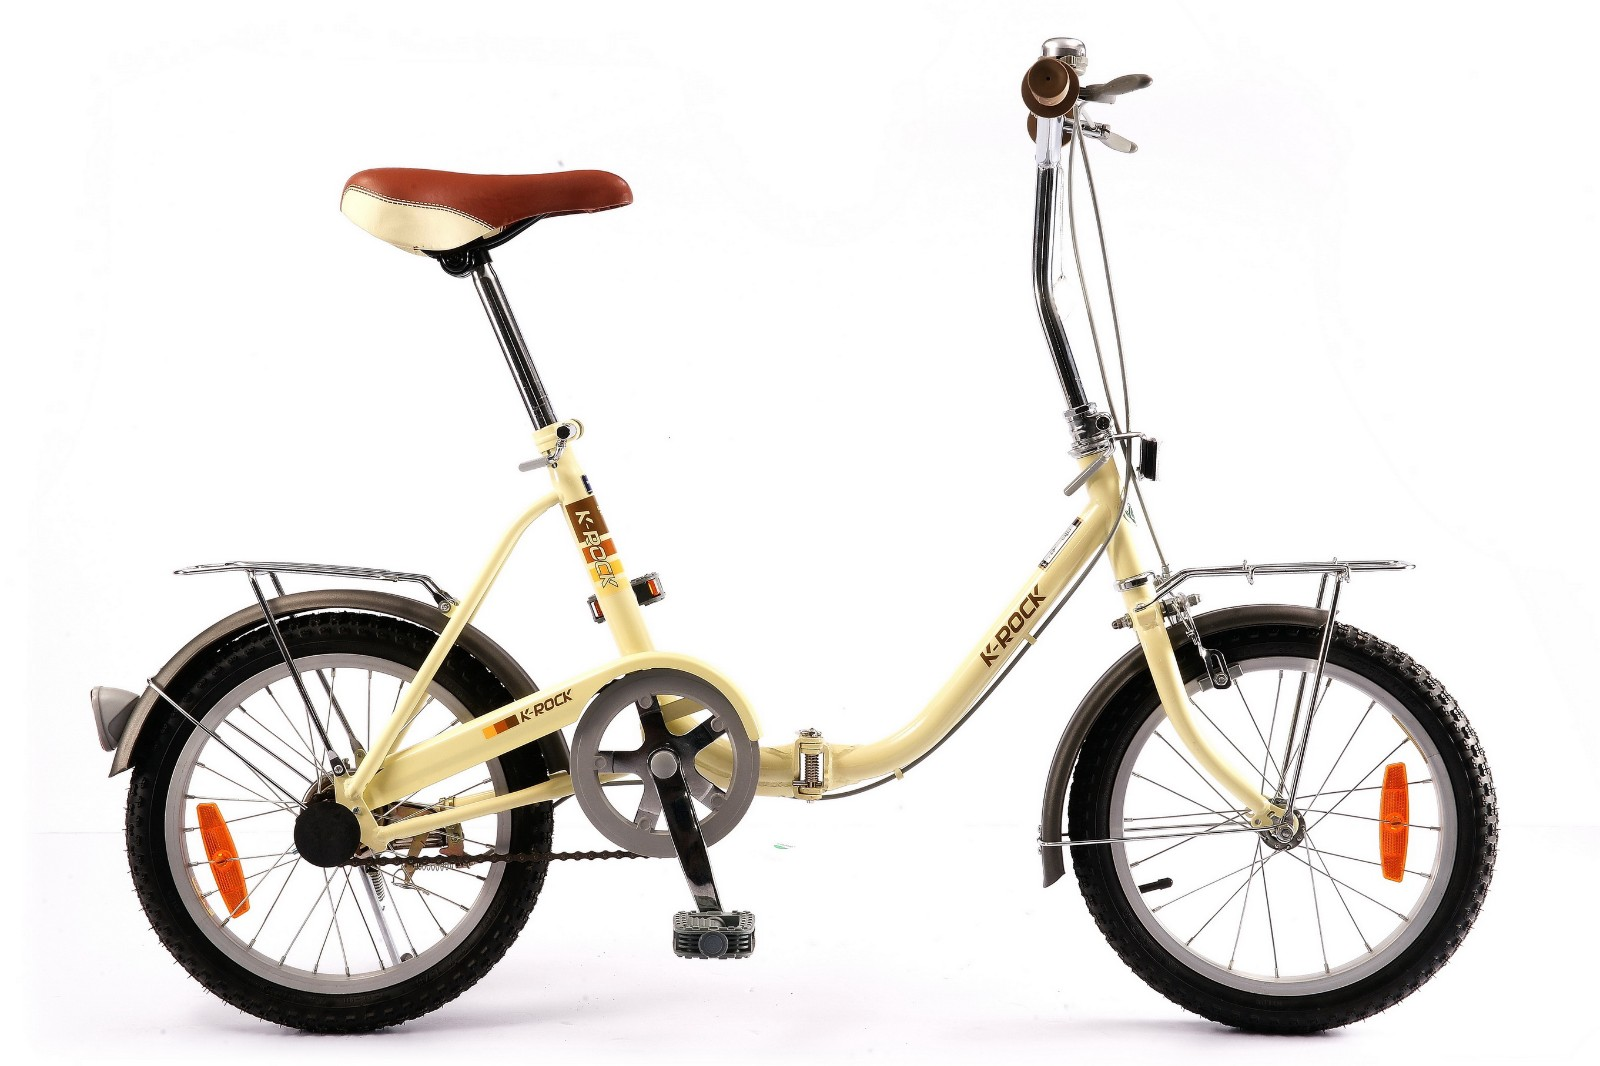 16 INCH STEEL FOLDING BICYCLE